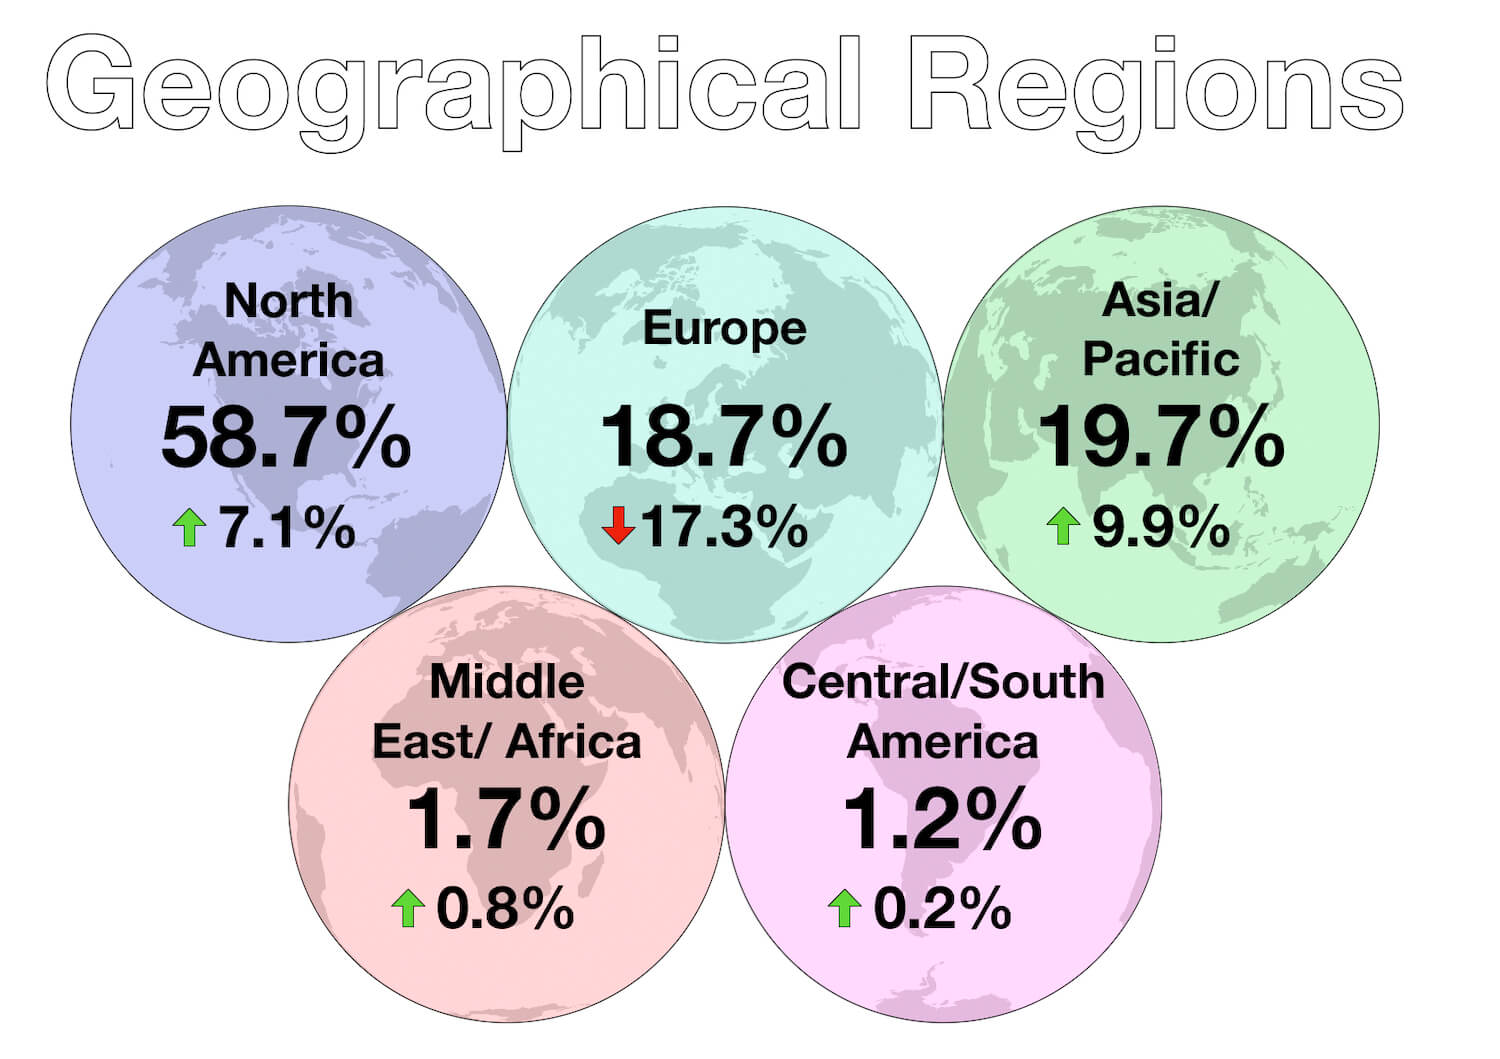 Capital Matters - Investments 2018-19 Year in Review - Geographical Changes